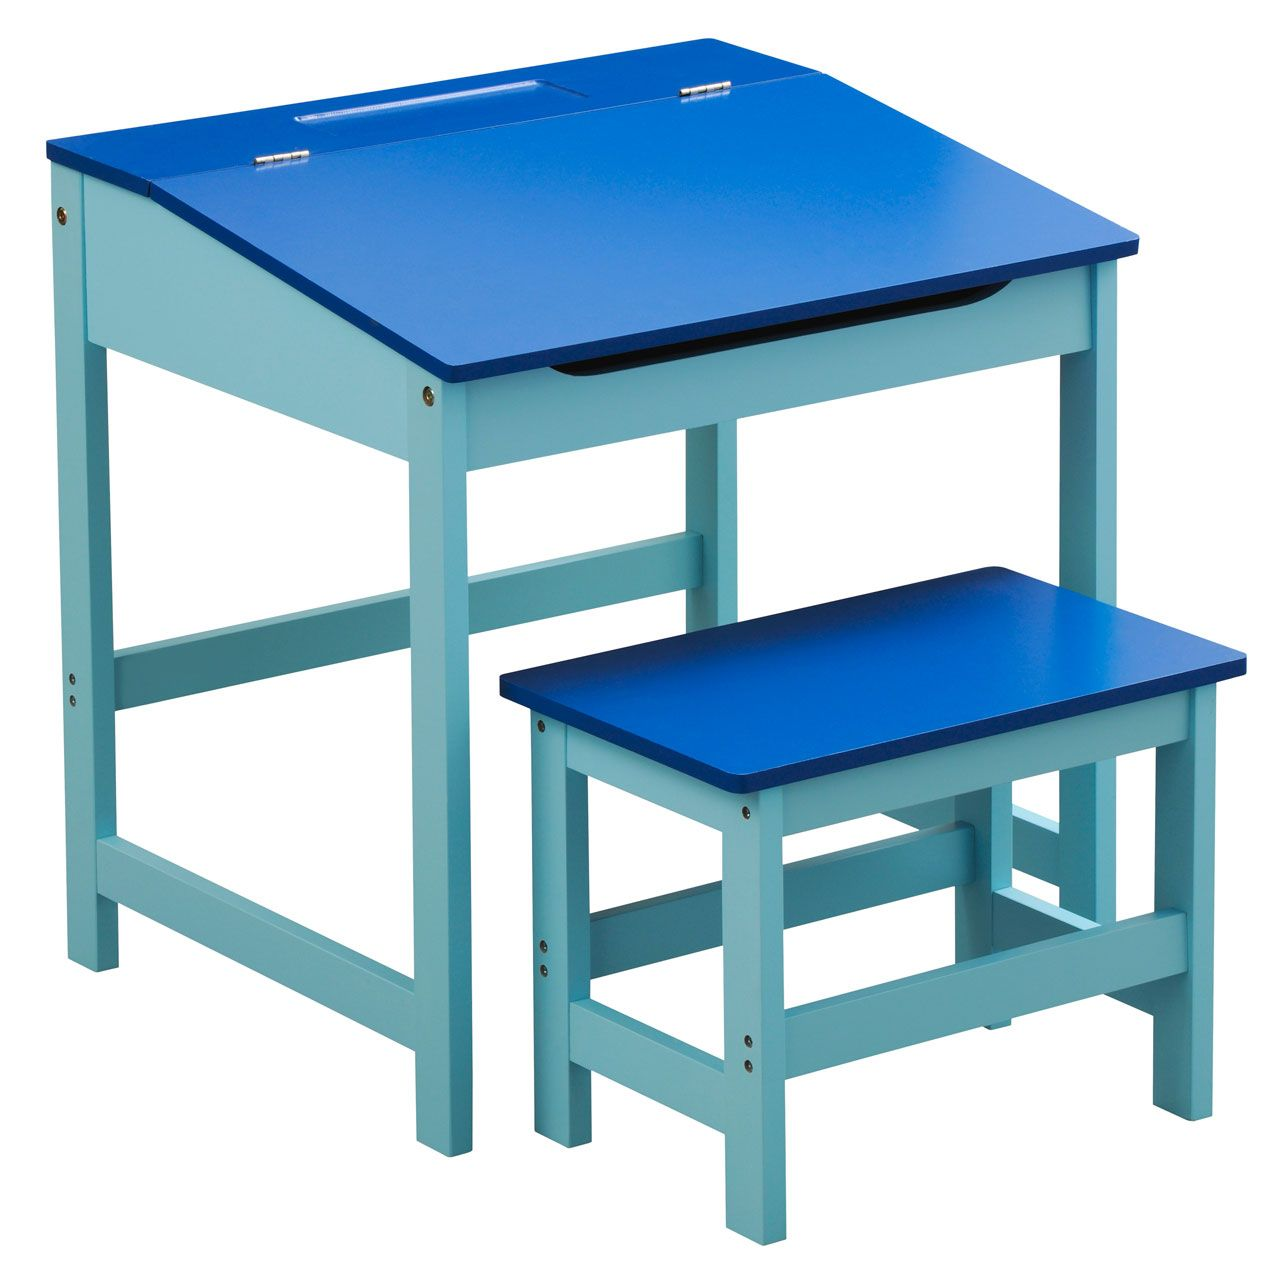 Chair drawing for kids - Gorgeous Kids Drawing Tables For Inspiration Lovely Minimalist Kids Drawing Table Design Inspiration With Blue Table Top And Light Blue Fr